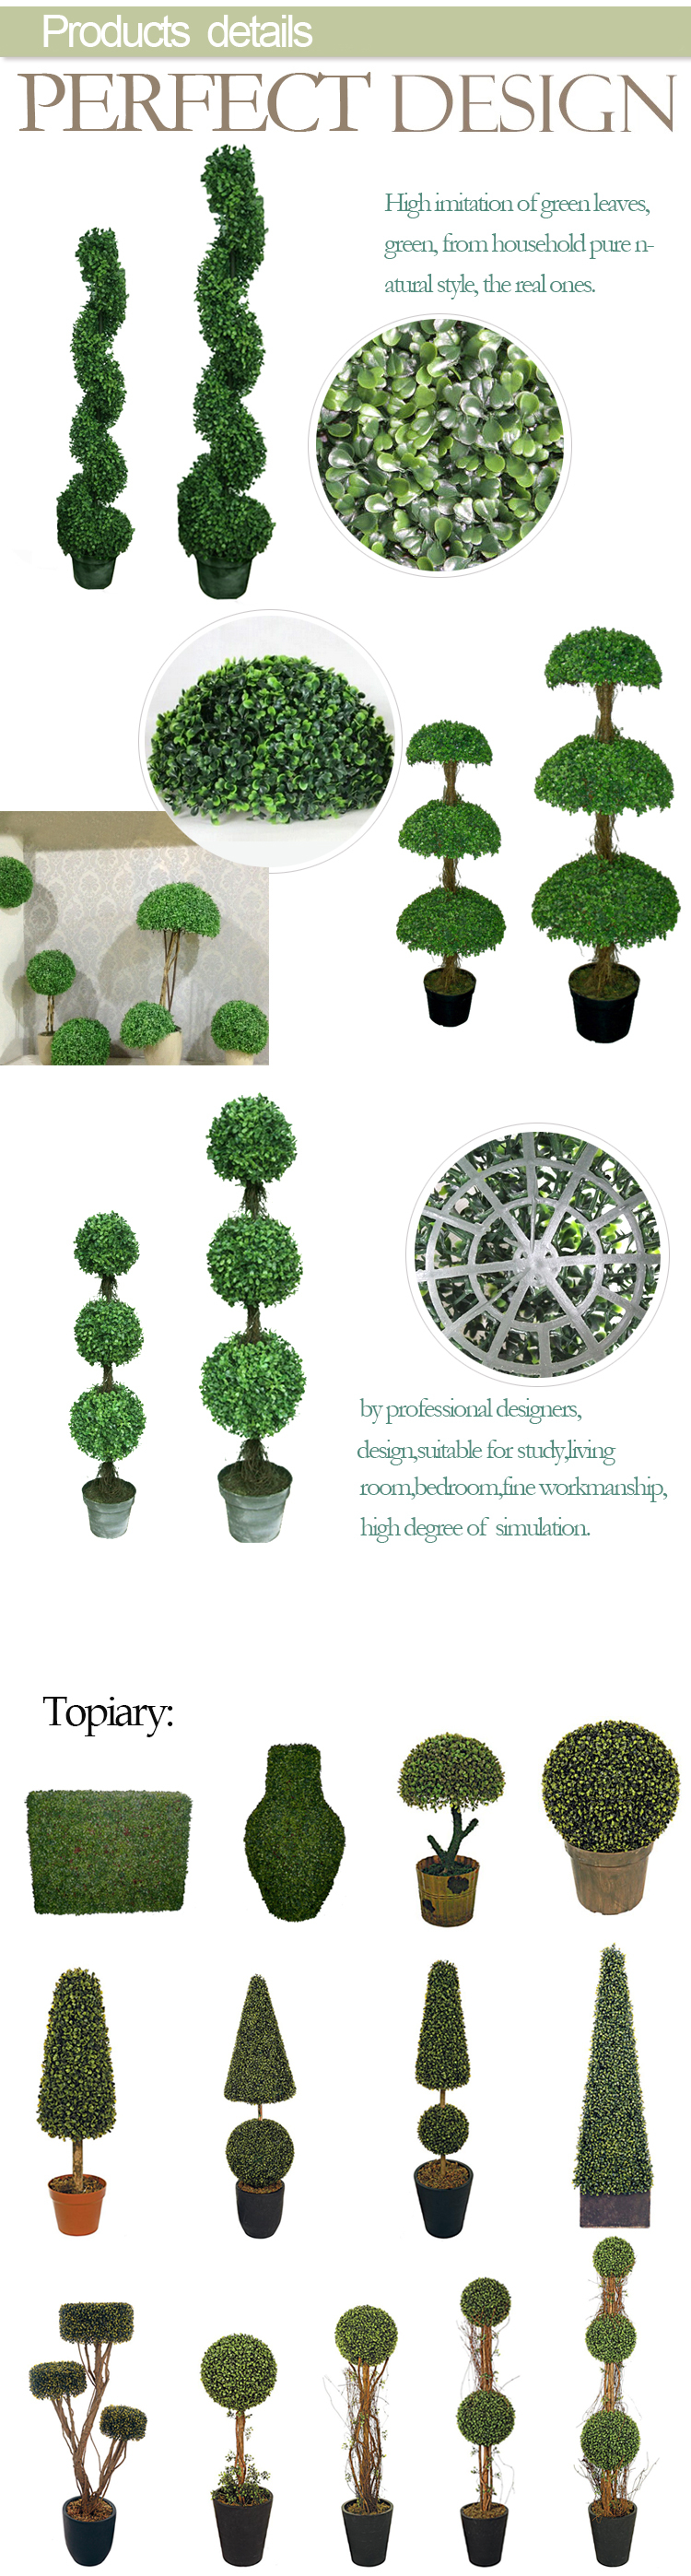 China Artificial Fake Plastic Boxwood Ball Hedge Wire Topiary Frames Plants Grass Ball Trees Bonsai Trees With Pots For Sale Buy Artificial Boxwood Ball Boxwood Artificial Boxwood Product On Alibaba Com